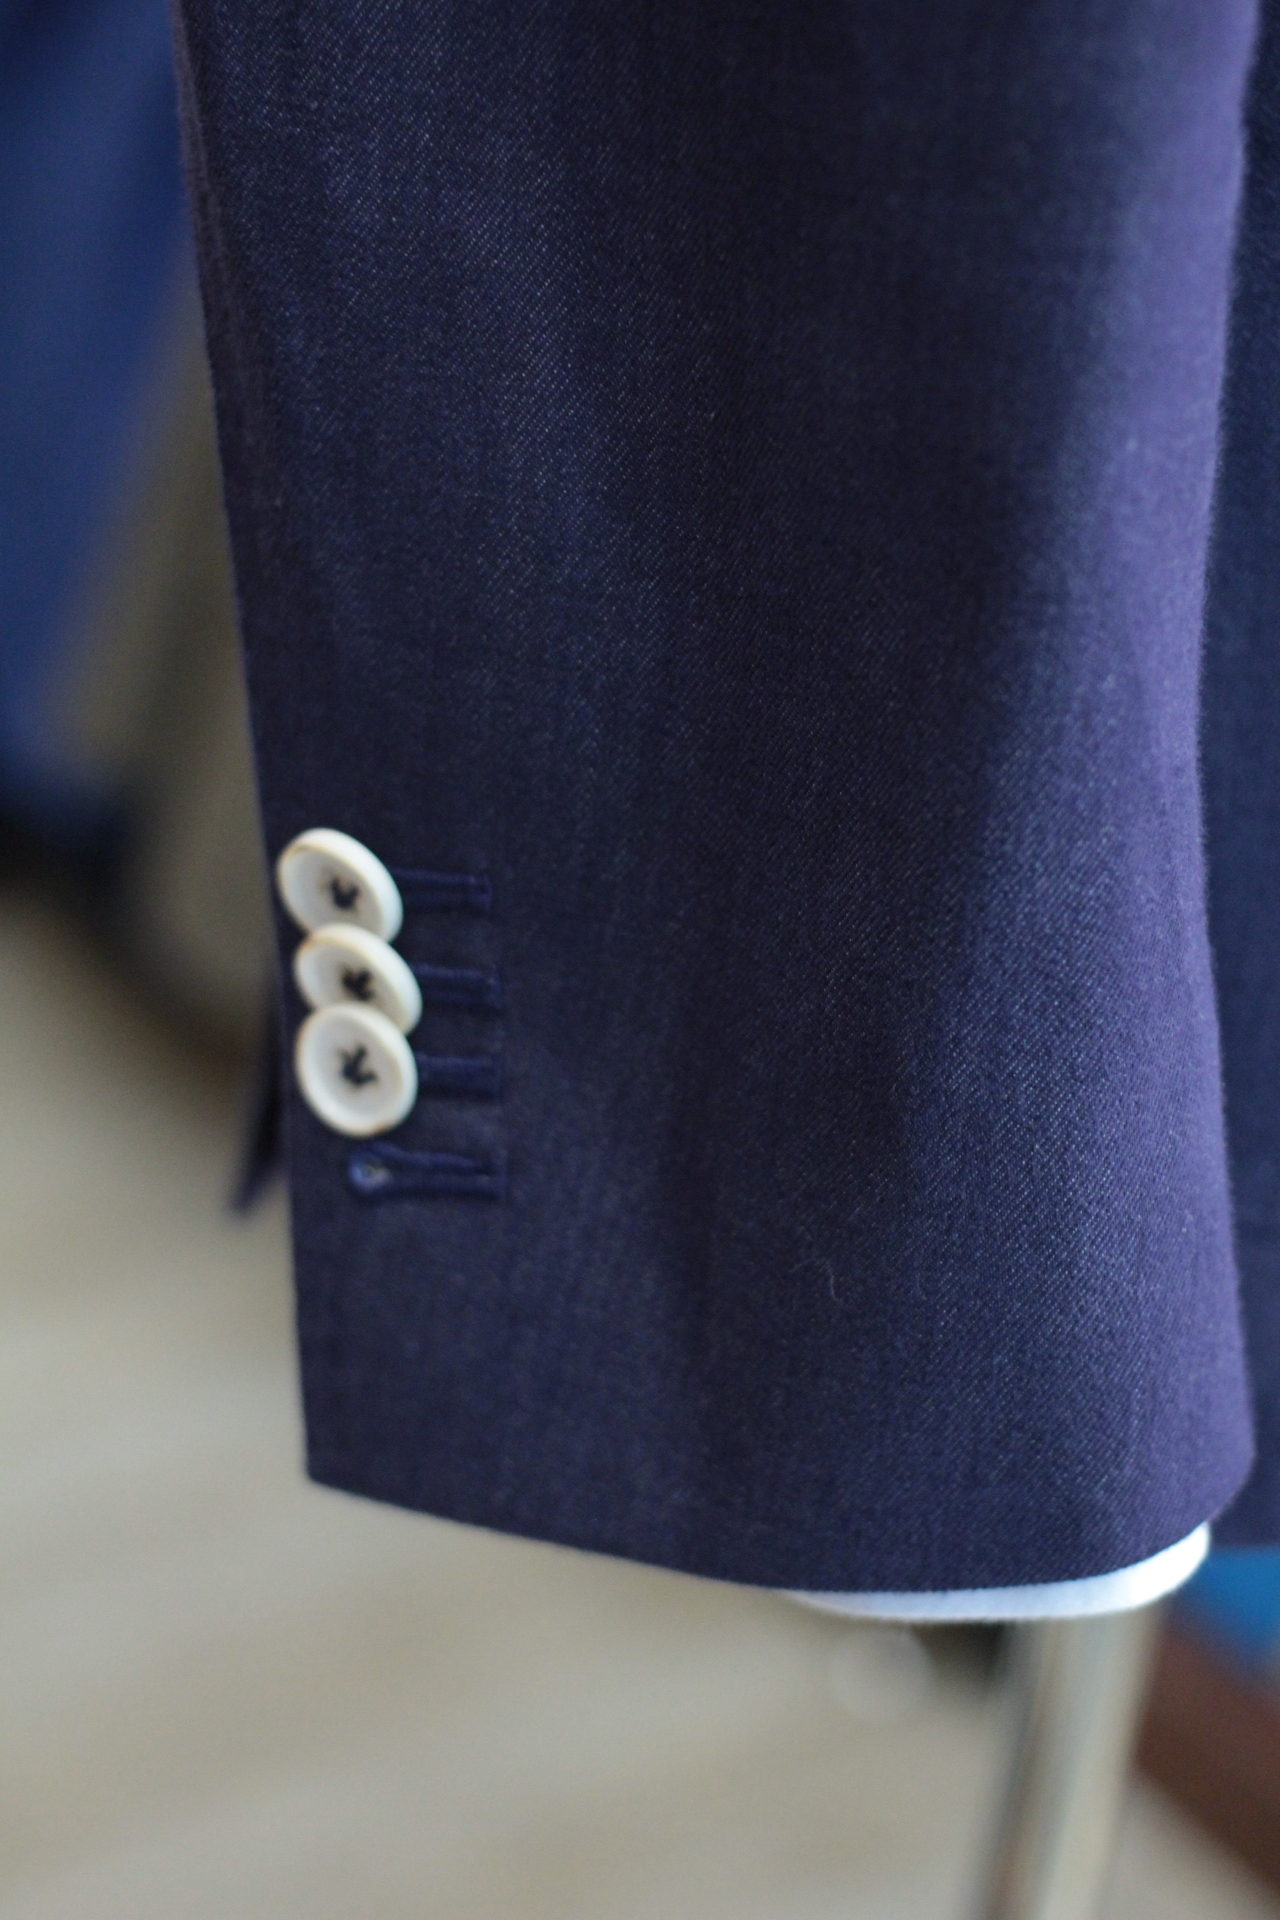 Functional Sleeve buttons with Natural Corozo Button